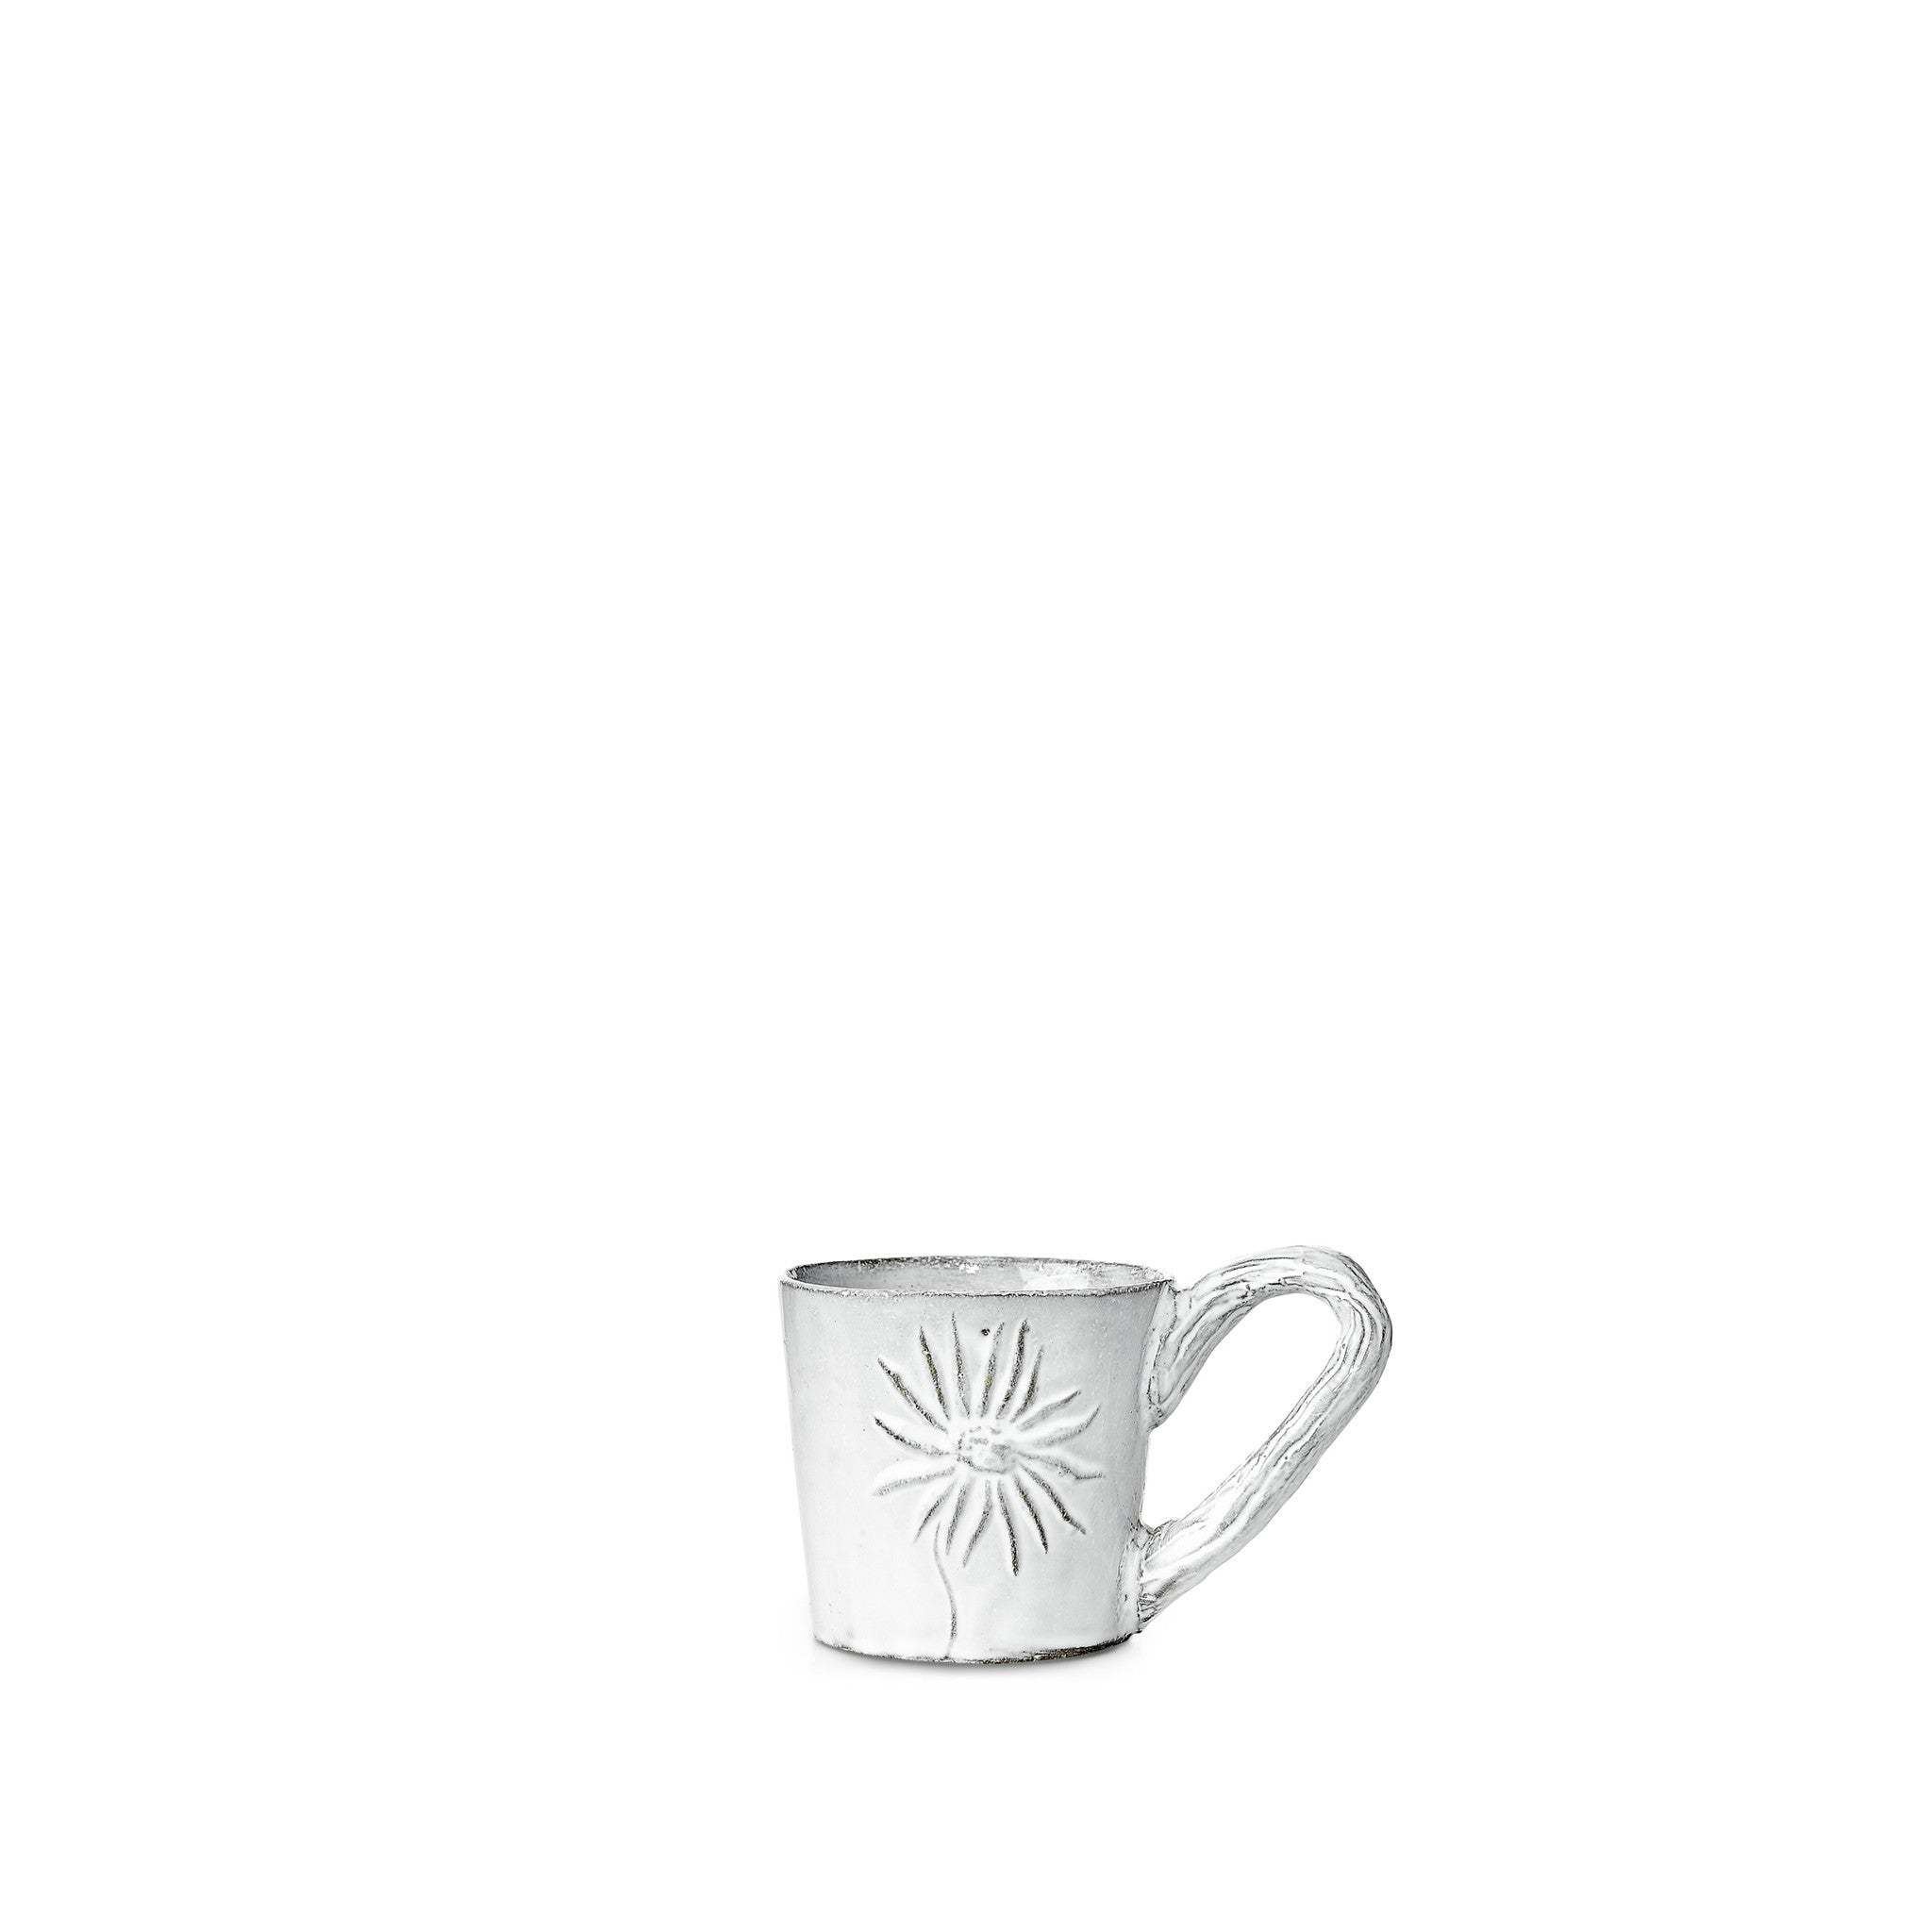 Fleurs Coffee Cup with Small Handle by Astier de Villatte